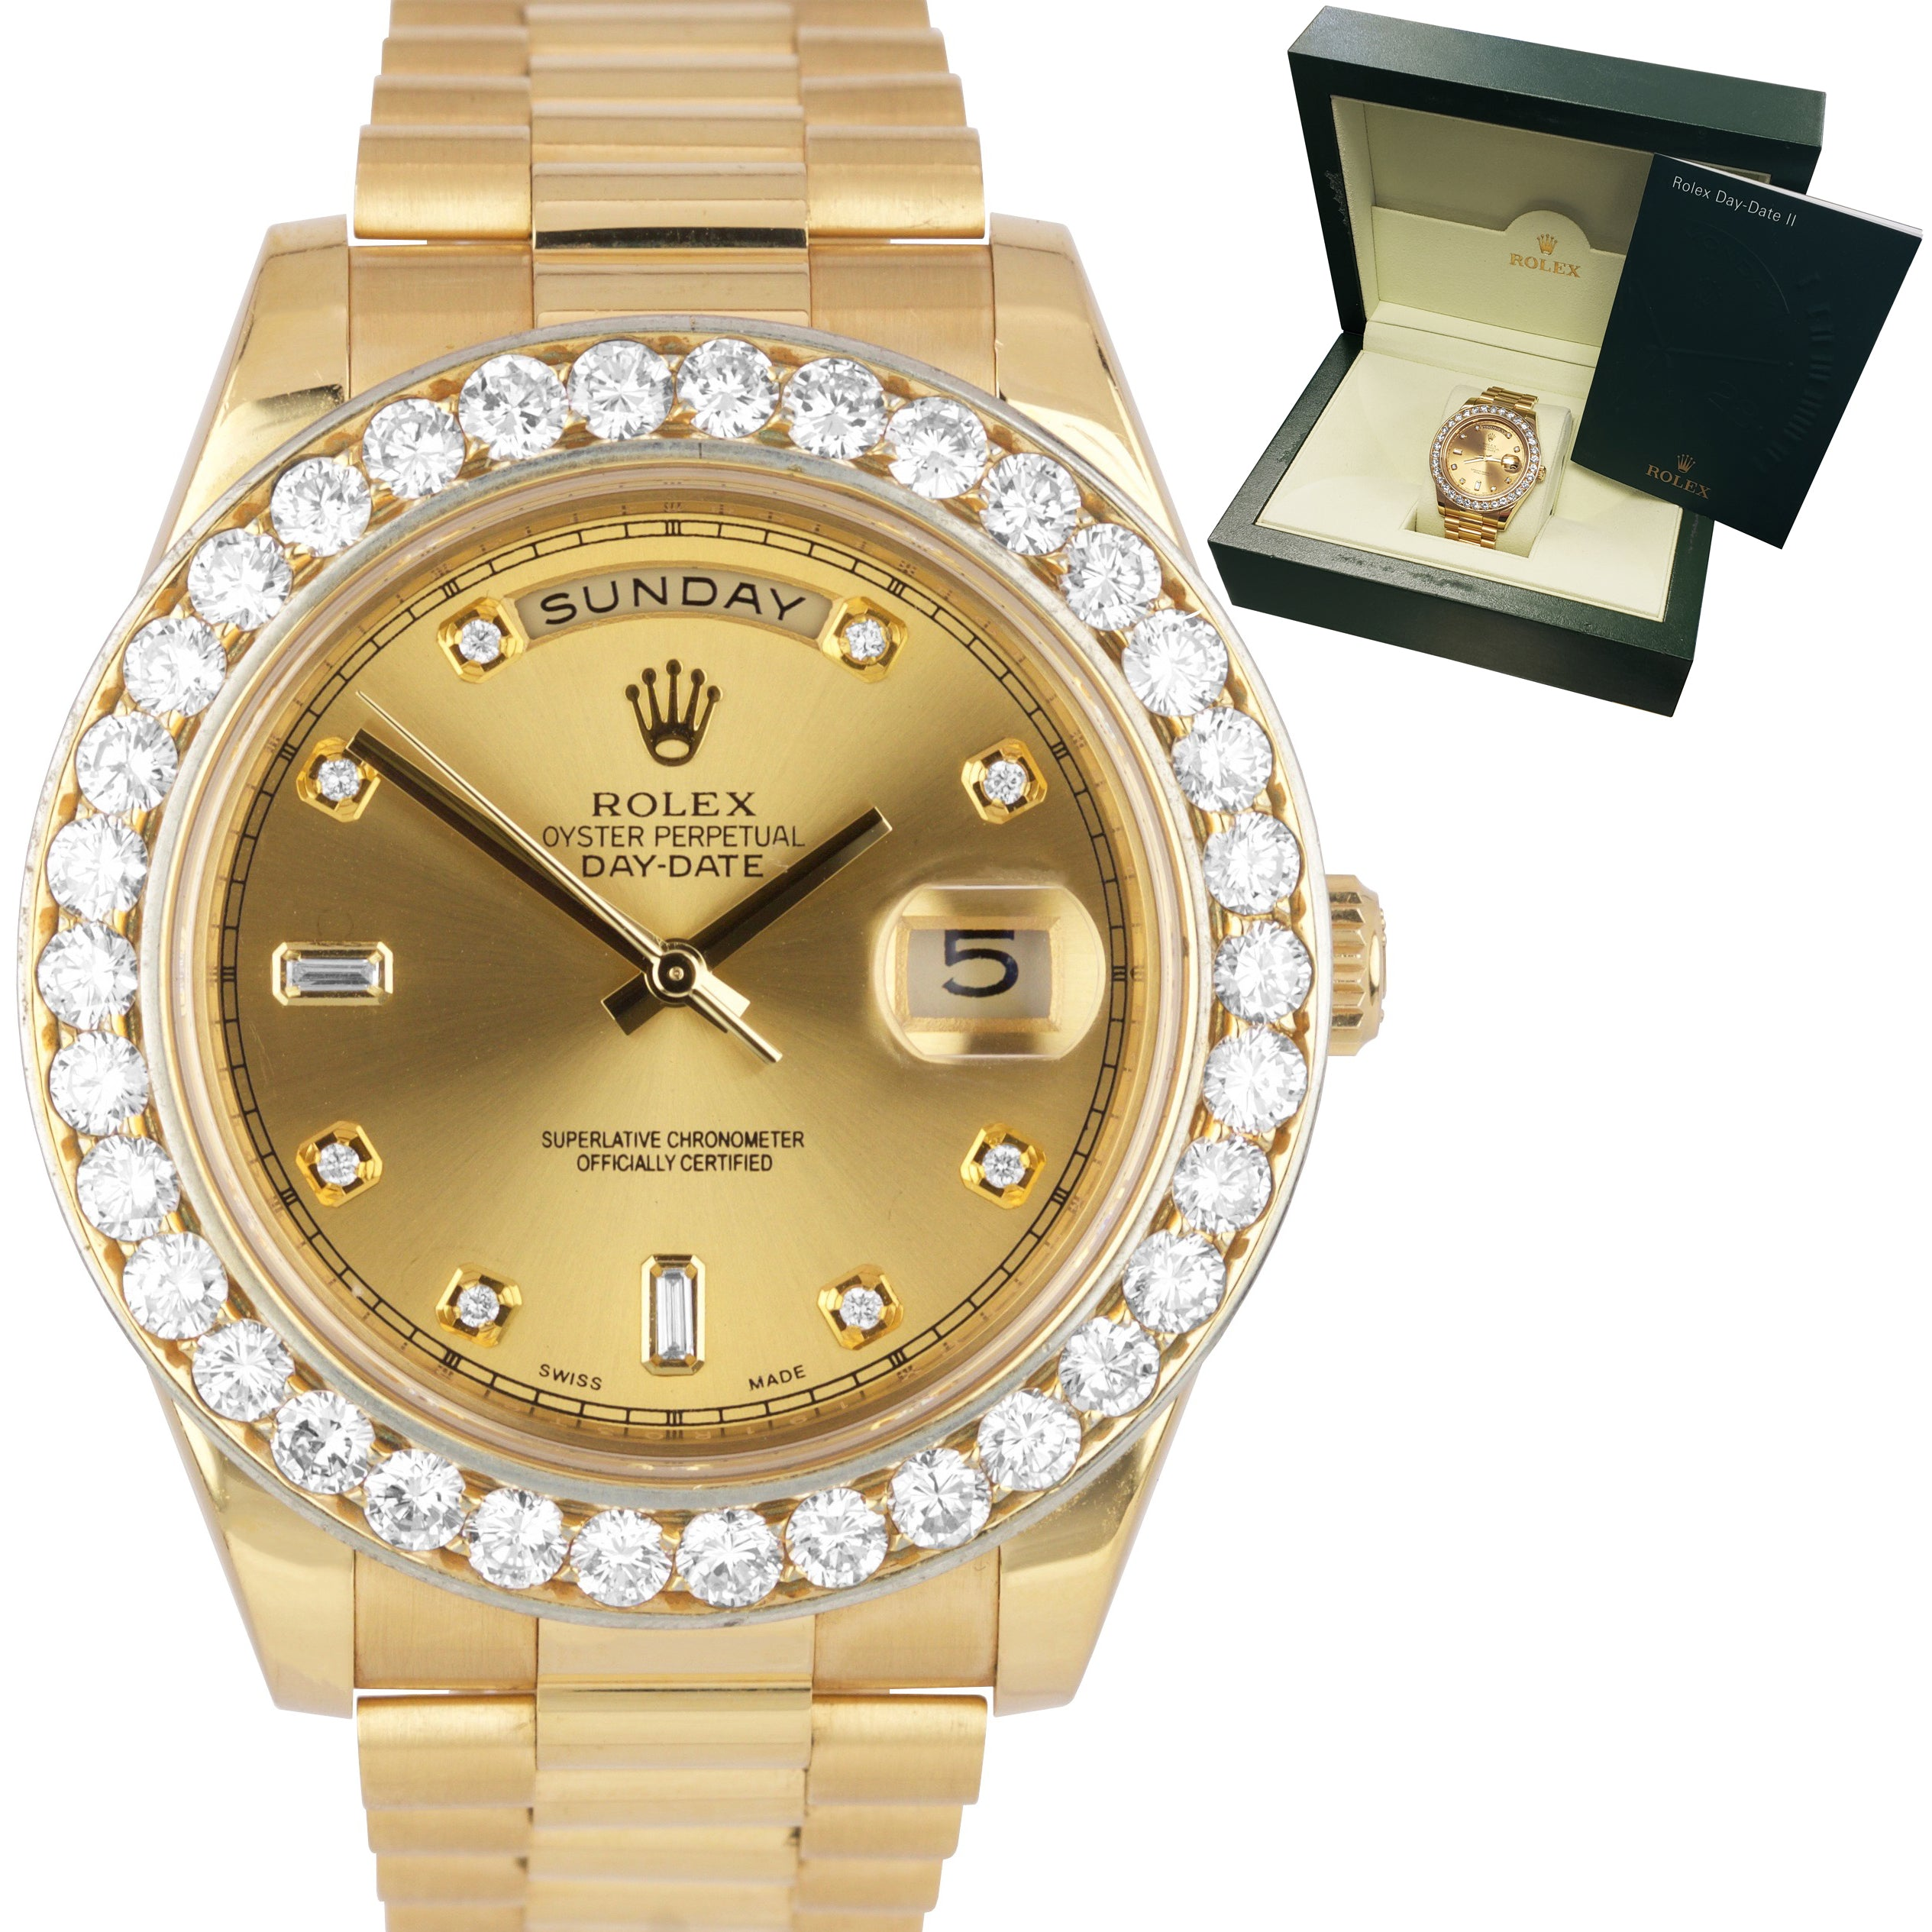 Rolex 18k Yellow Gold Day Date Ii 41mm Diamond Dial Bezel President Watch 218238